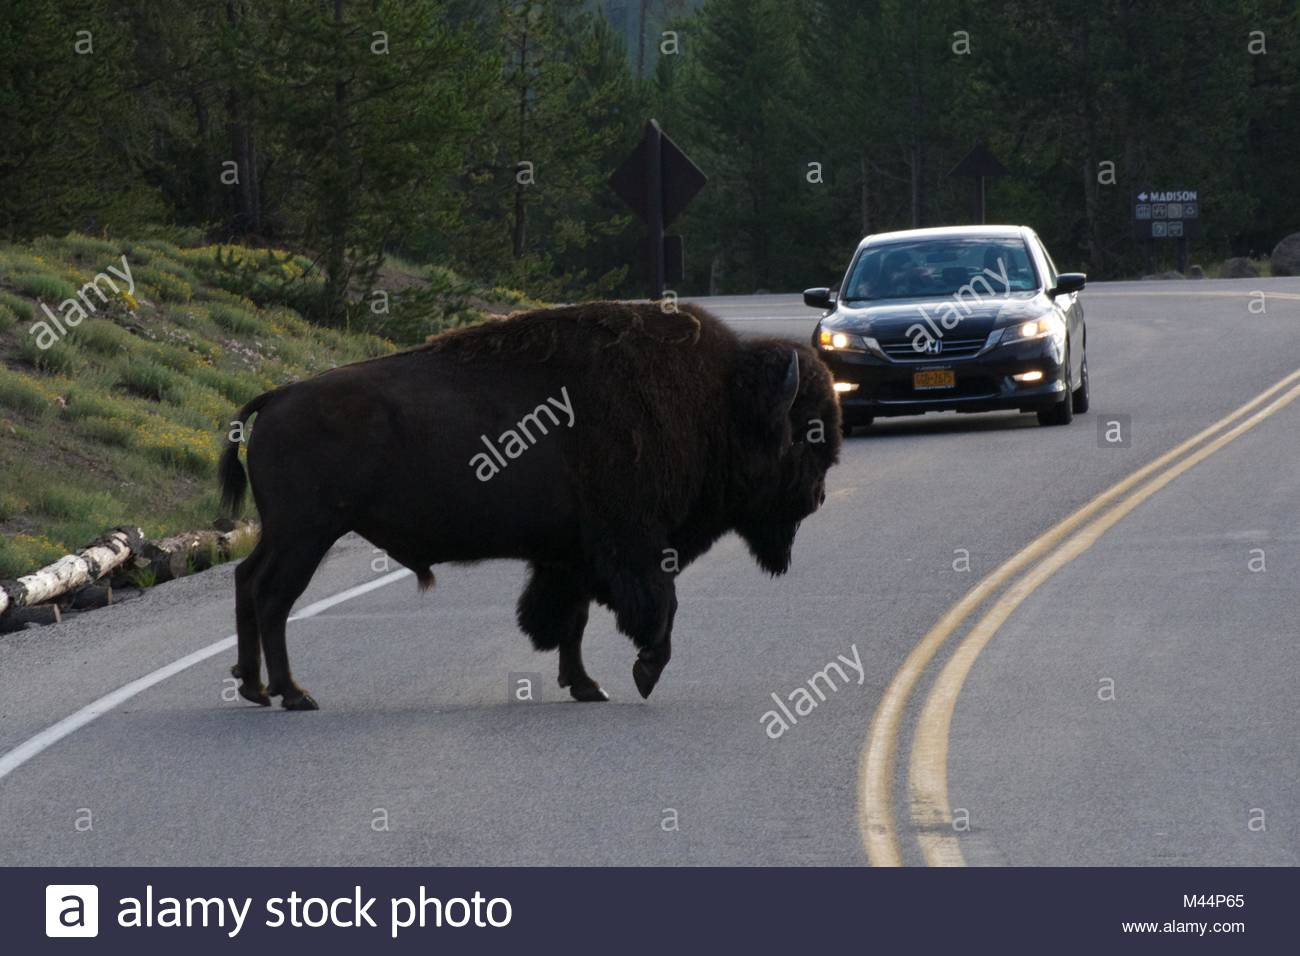 Car letting a bison cross the road - Stock Image